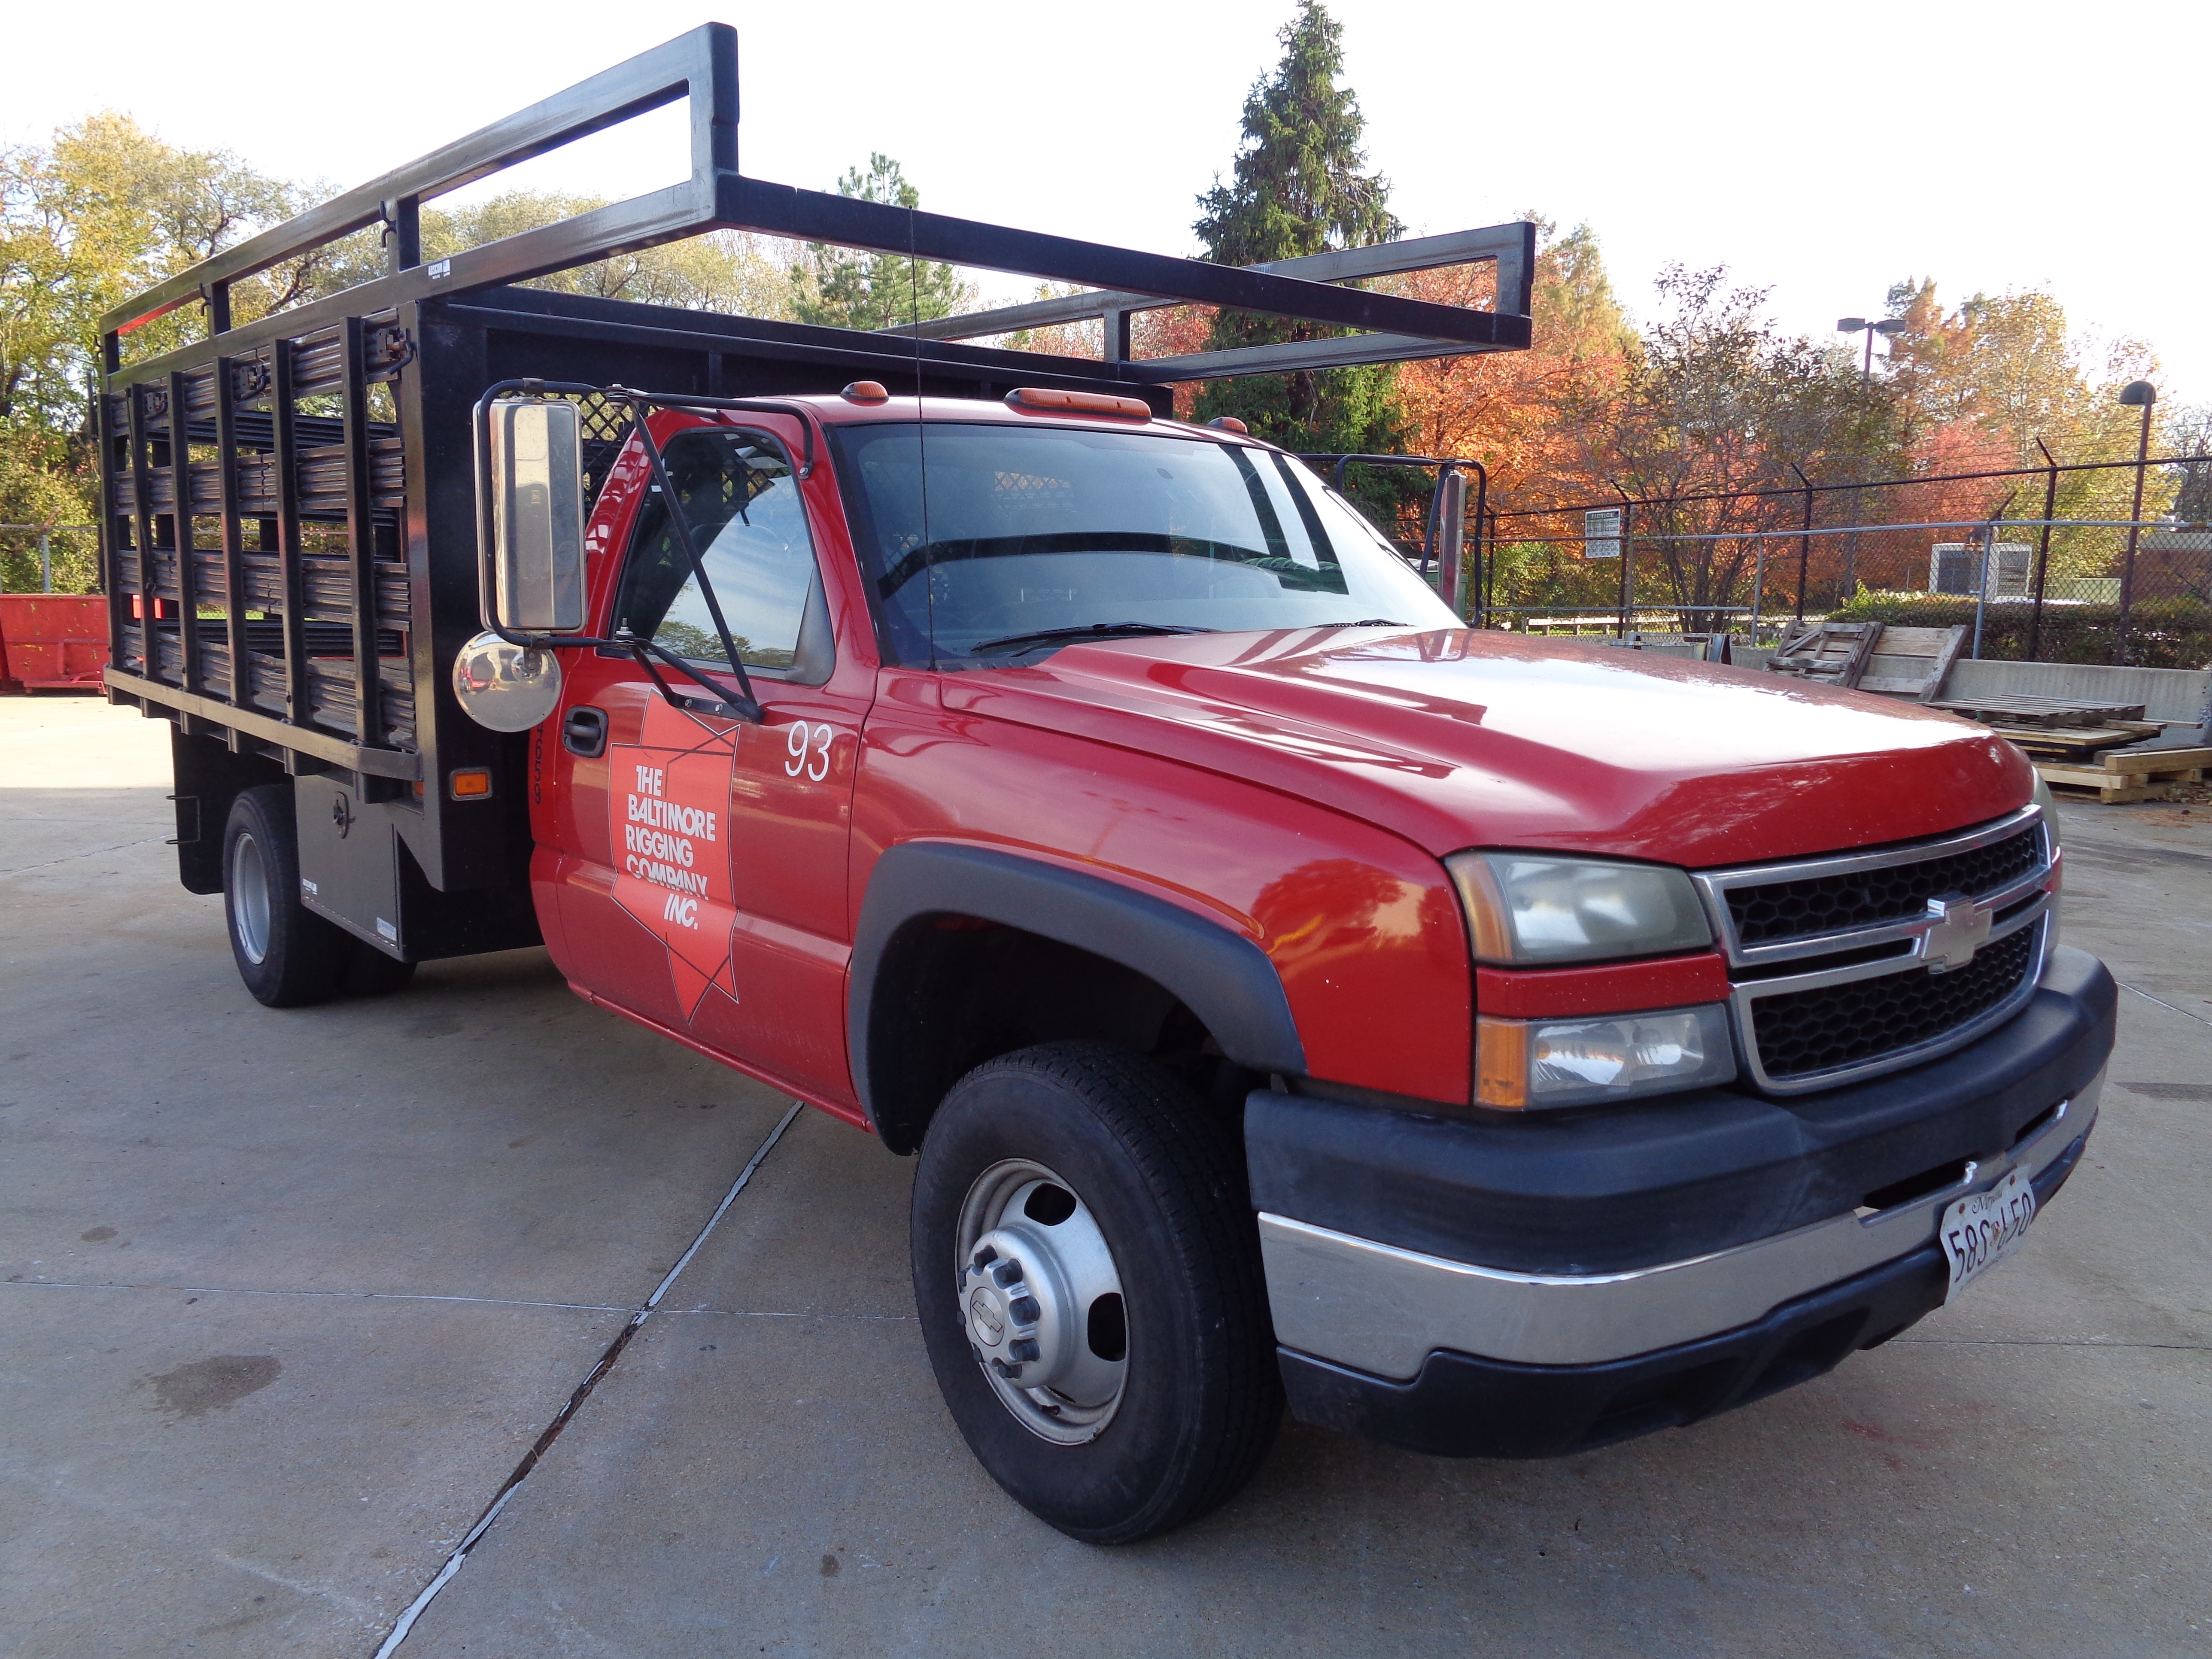 2006 Chevy 3500 Stake Pick-Up Truck - Image 5 of 9